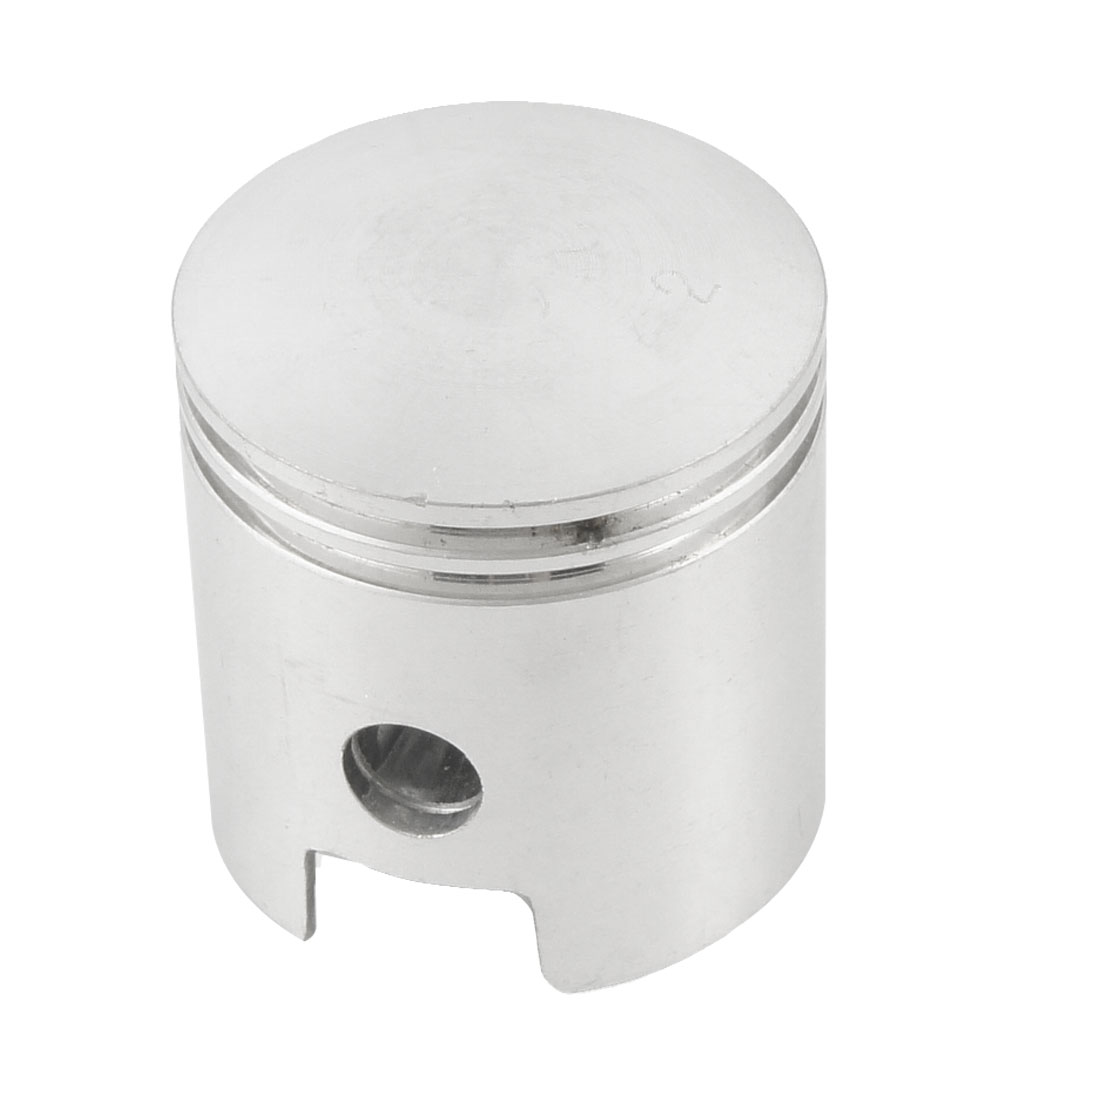 Air Compressor Silver Tone 45mm Dia Aluminum Alloy Engine Piston